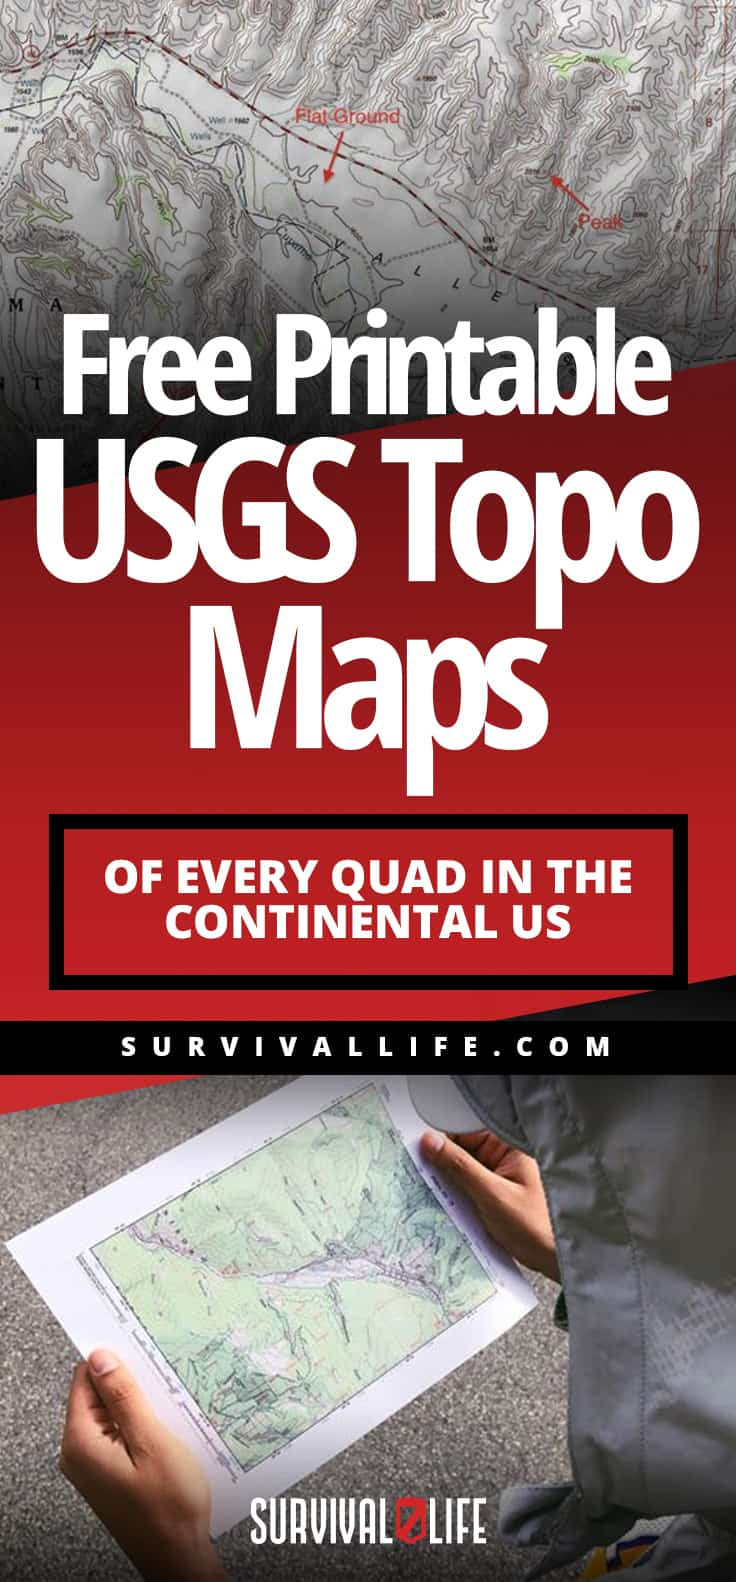 USGS Topo Maps Of Every Quad In The Continental US [Free Printable ] | https://survivallife.com/printable-usgs-topo-maps/